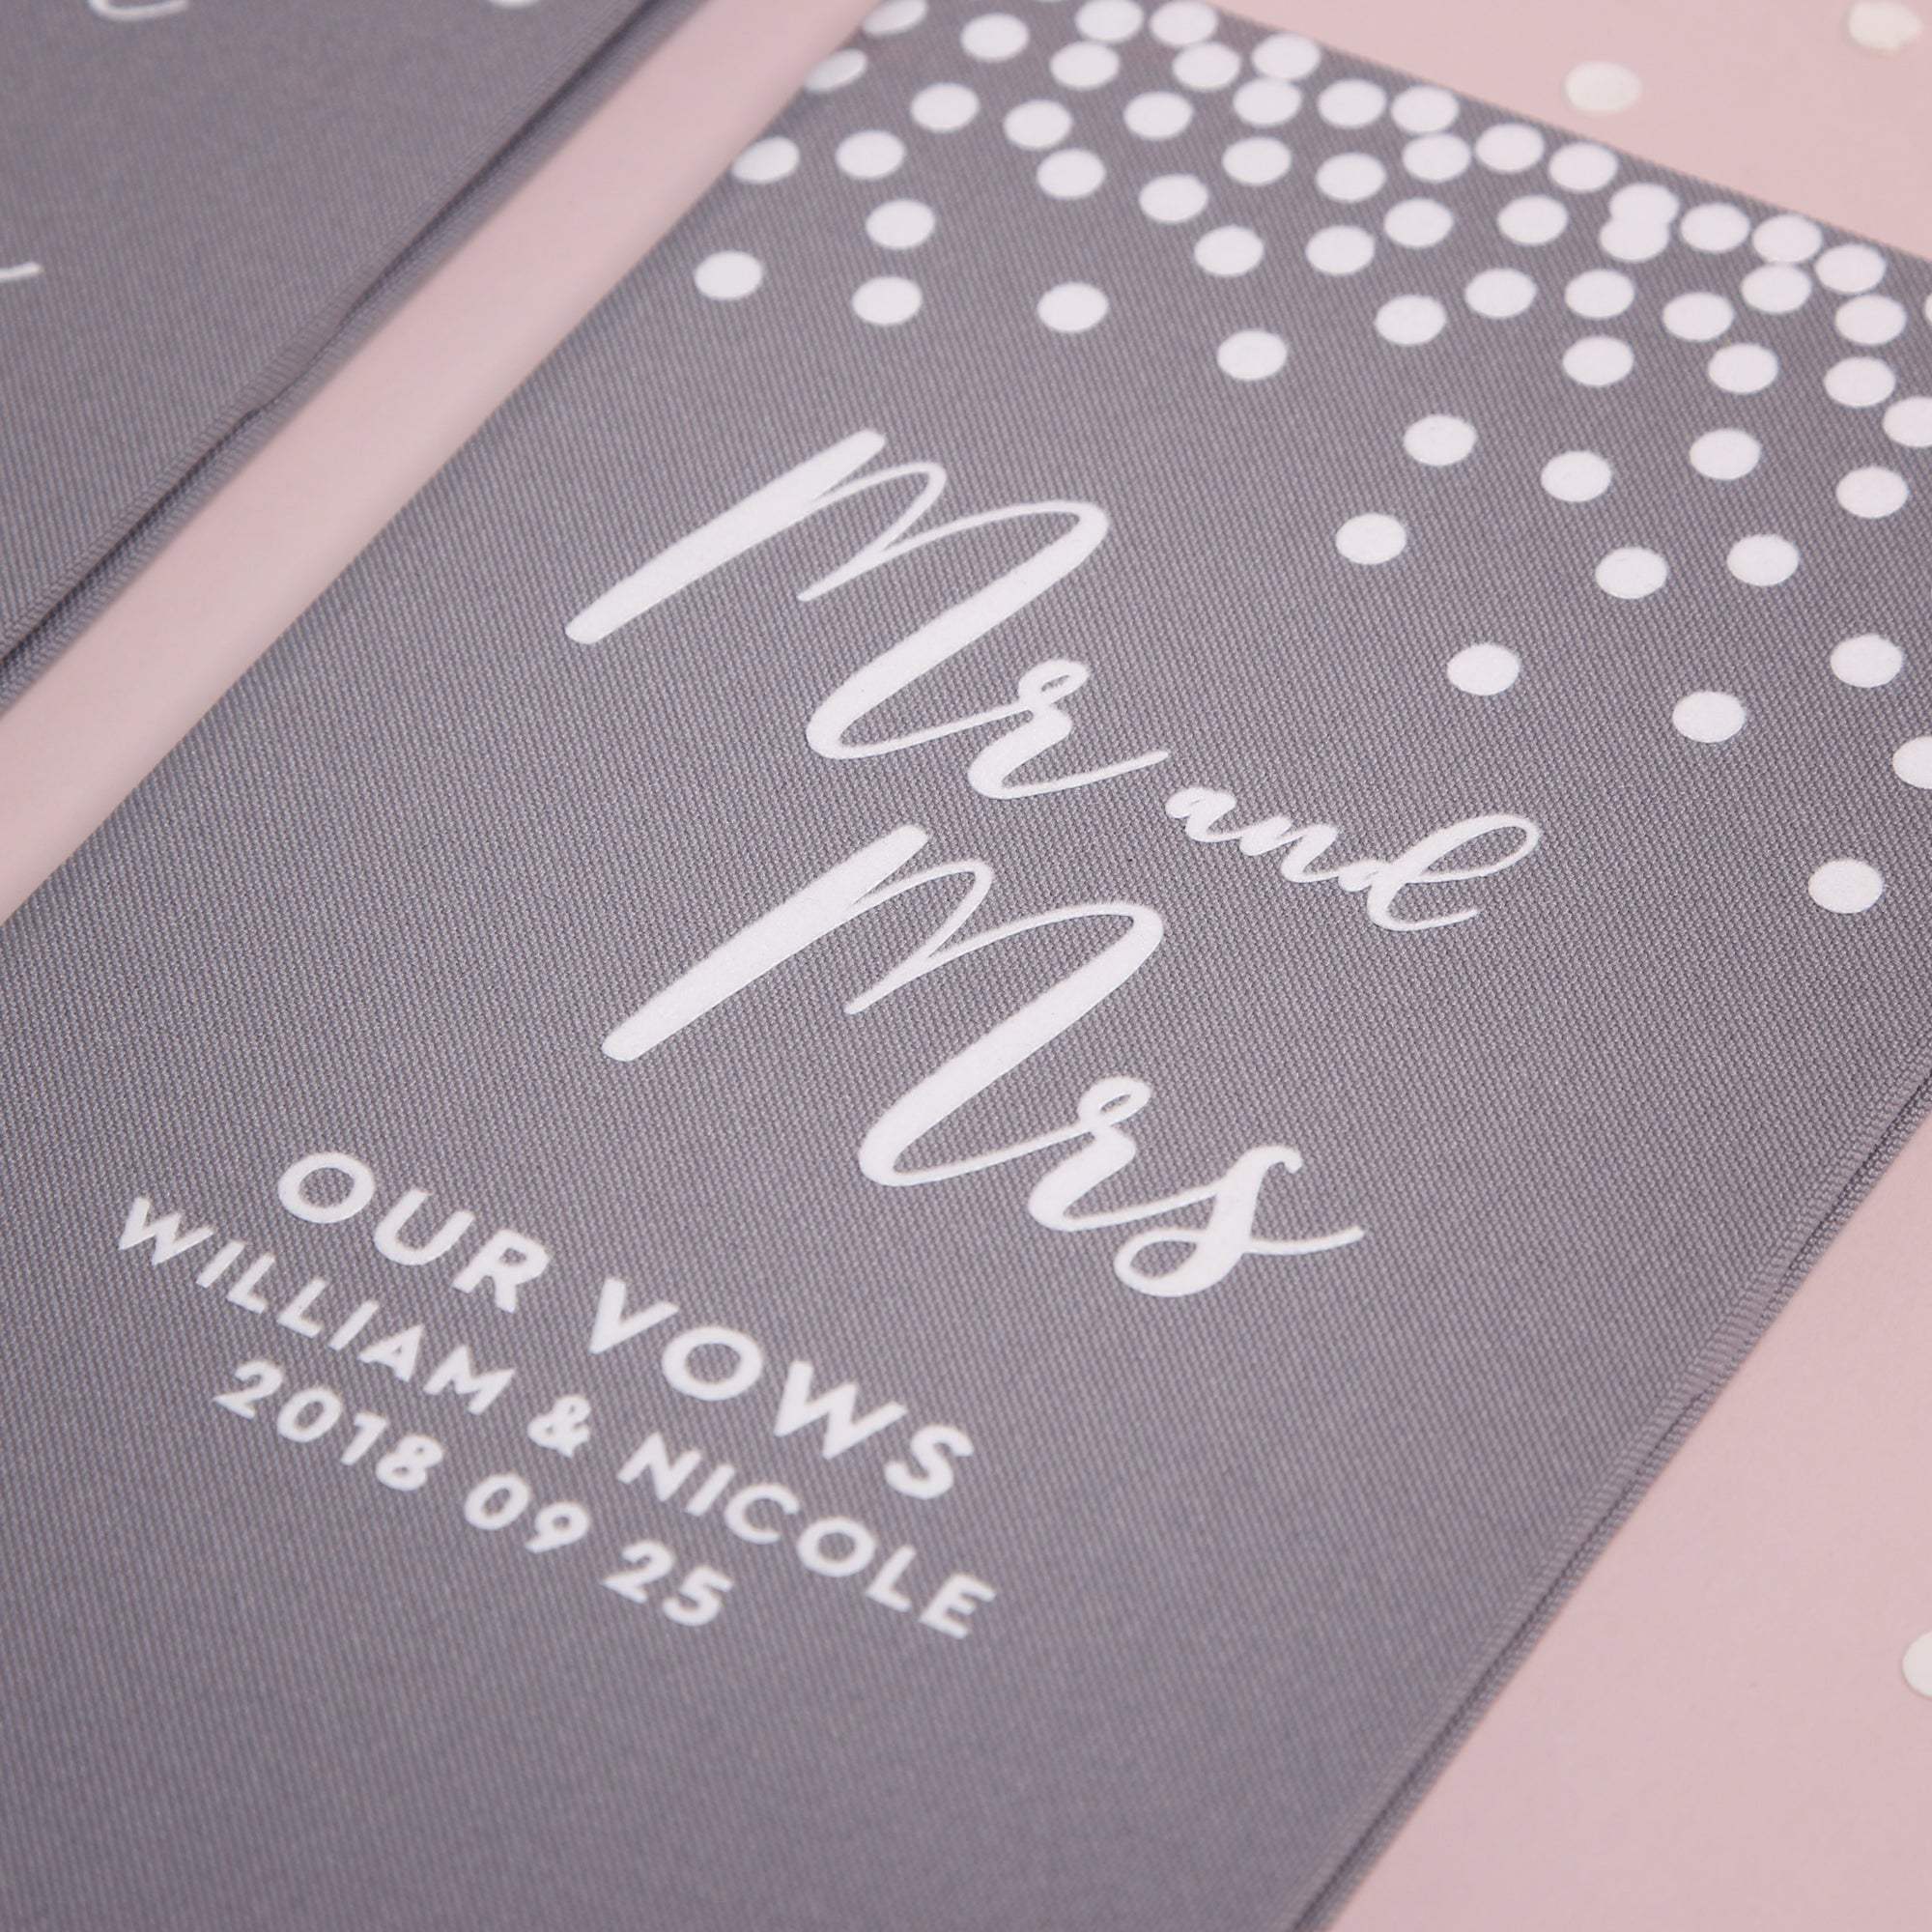 Personalized Wedding Vow Books White Velour Gray Dots Vows Bride and Groom Ceremony